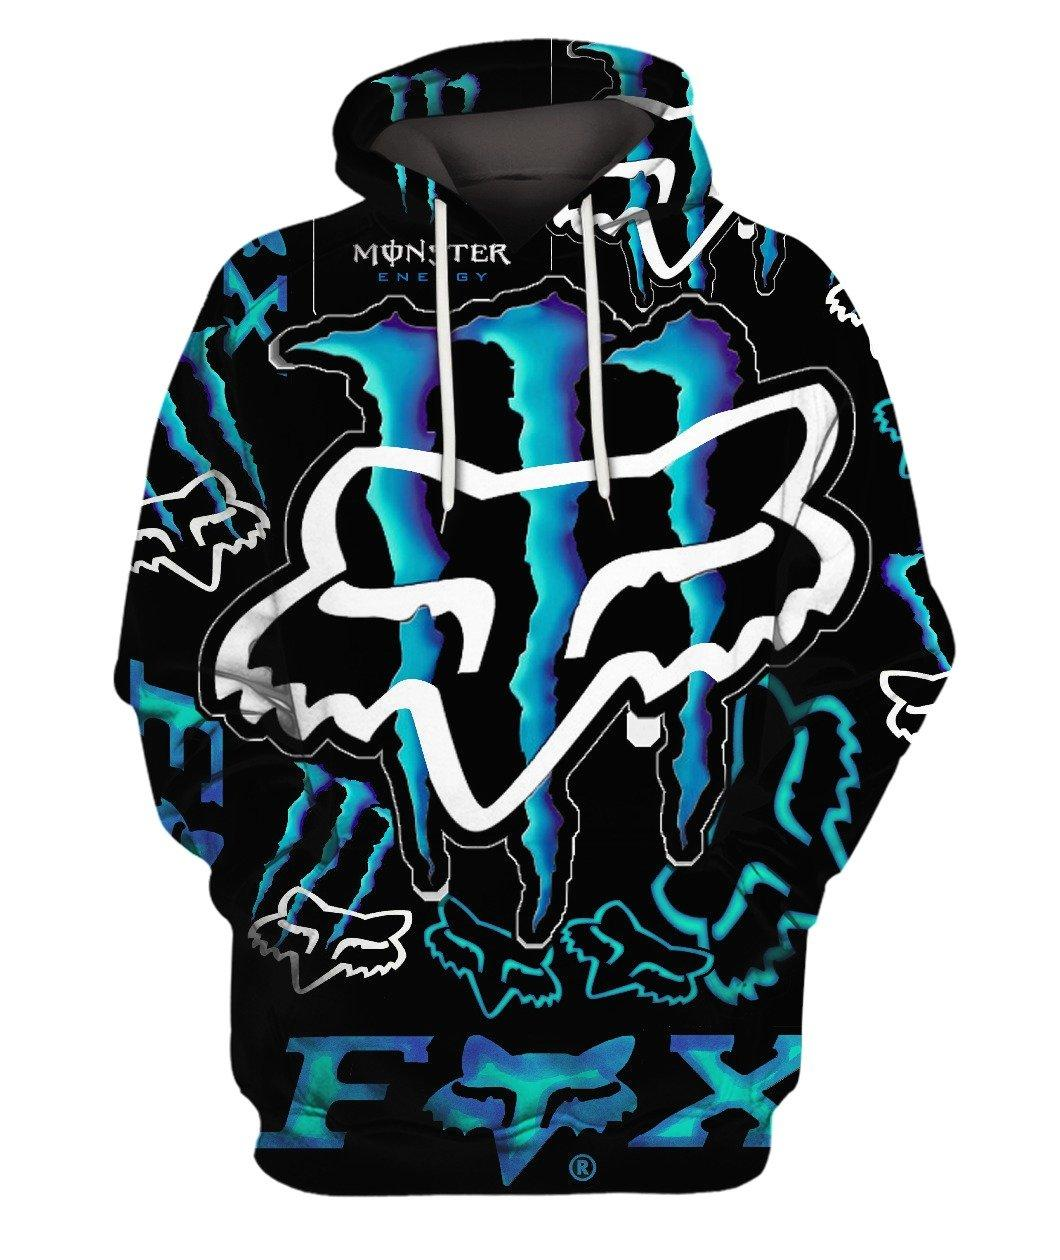 Fox Bike Monster Energy Blue 3d Full Print 3d Graphic Printed Tshirt Hoodie Up To 5xl